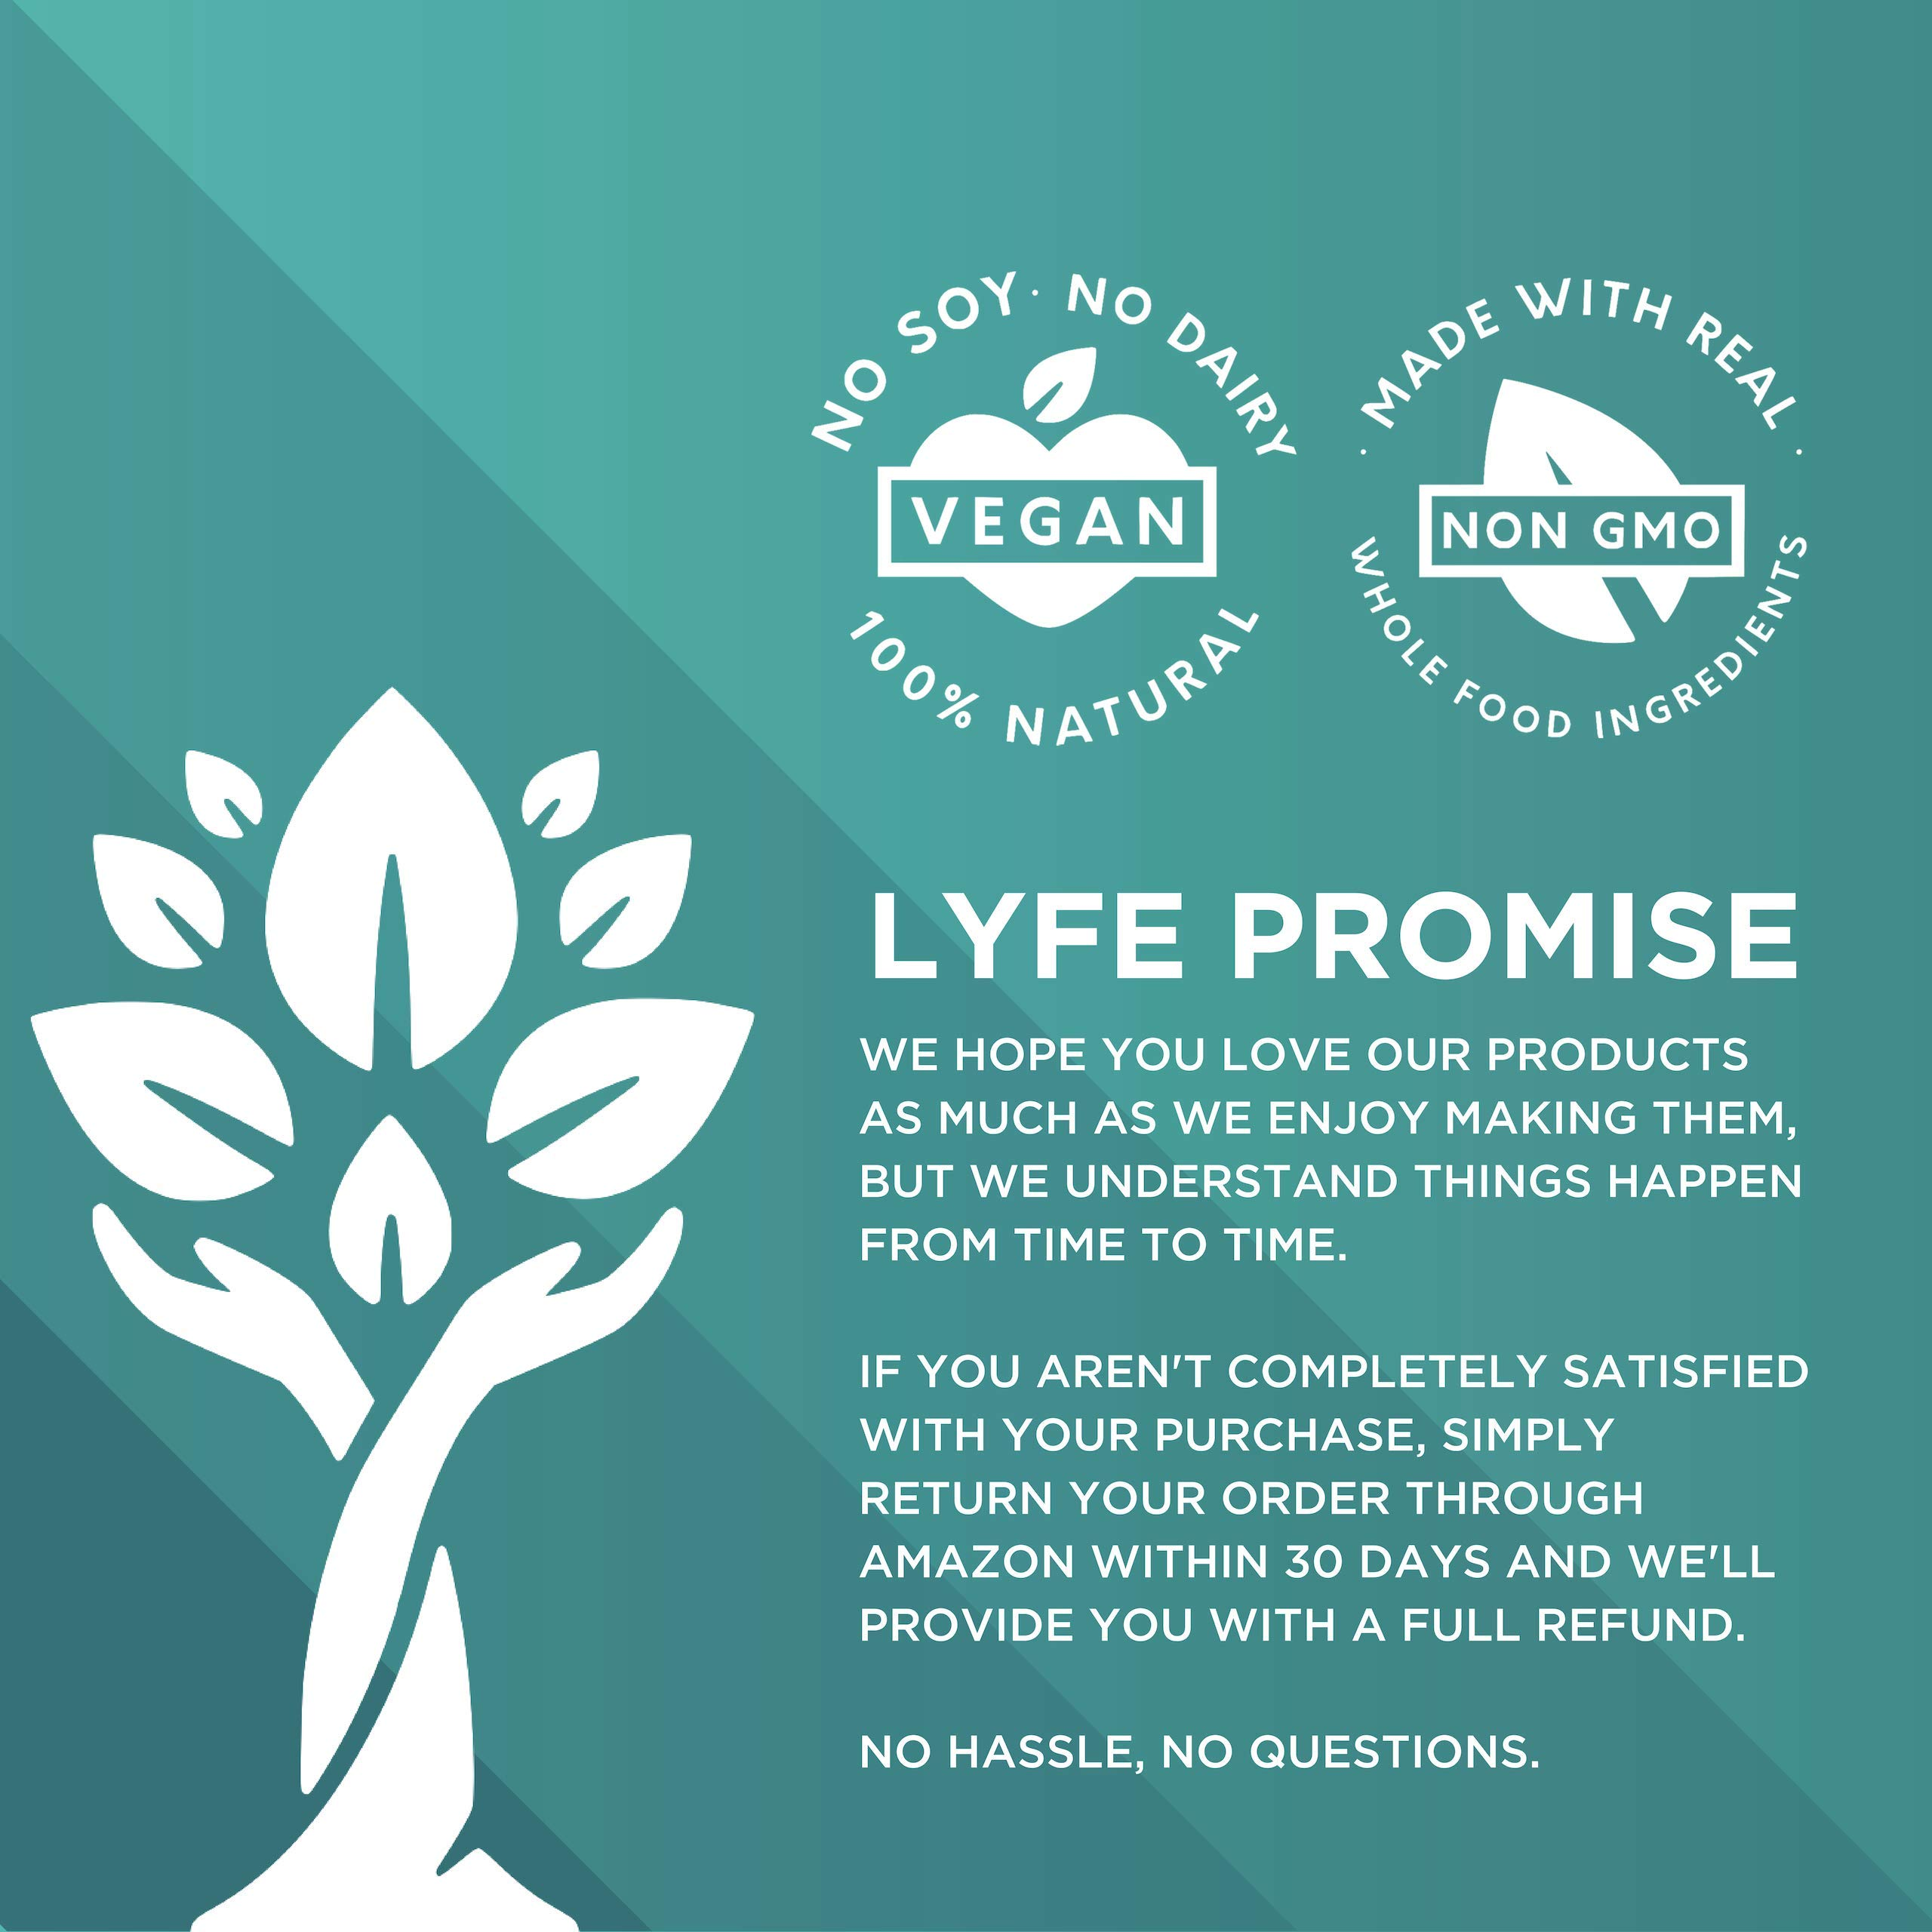 LYFE FUEL Transformation Bundle - Meal Replacement Shakes for Optimal Nutrition - Support a Whole Food Plant-Based Diet & Weight Loss - Vegan, Keto, Low Carb (2 Bags - Chocolate + Vanilla, 28 Meals)